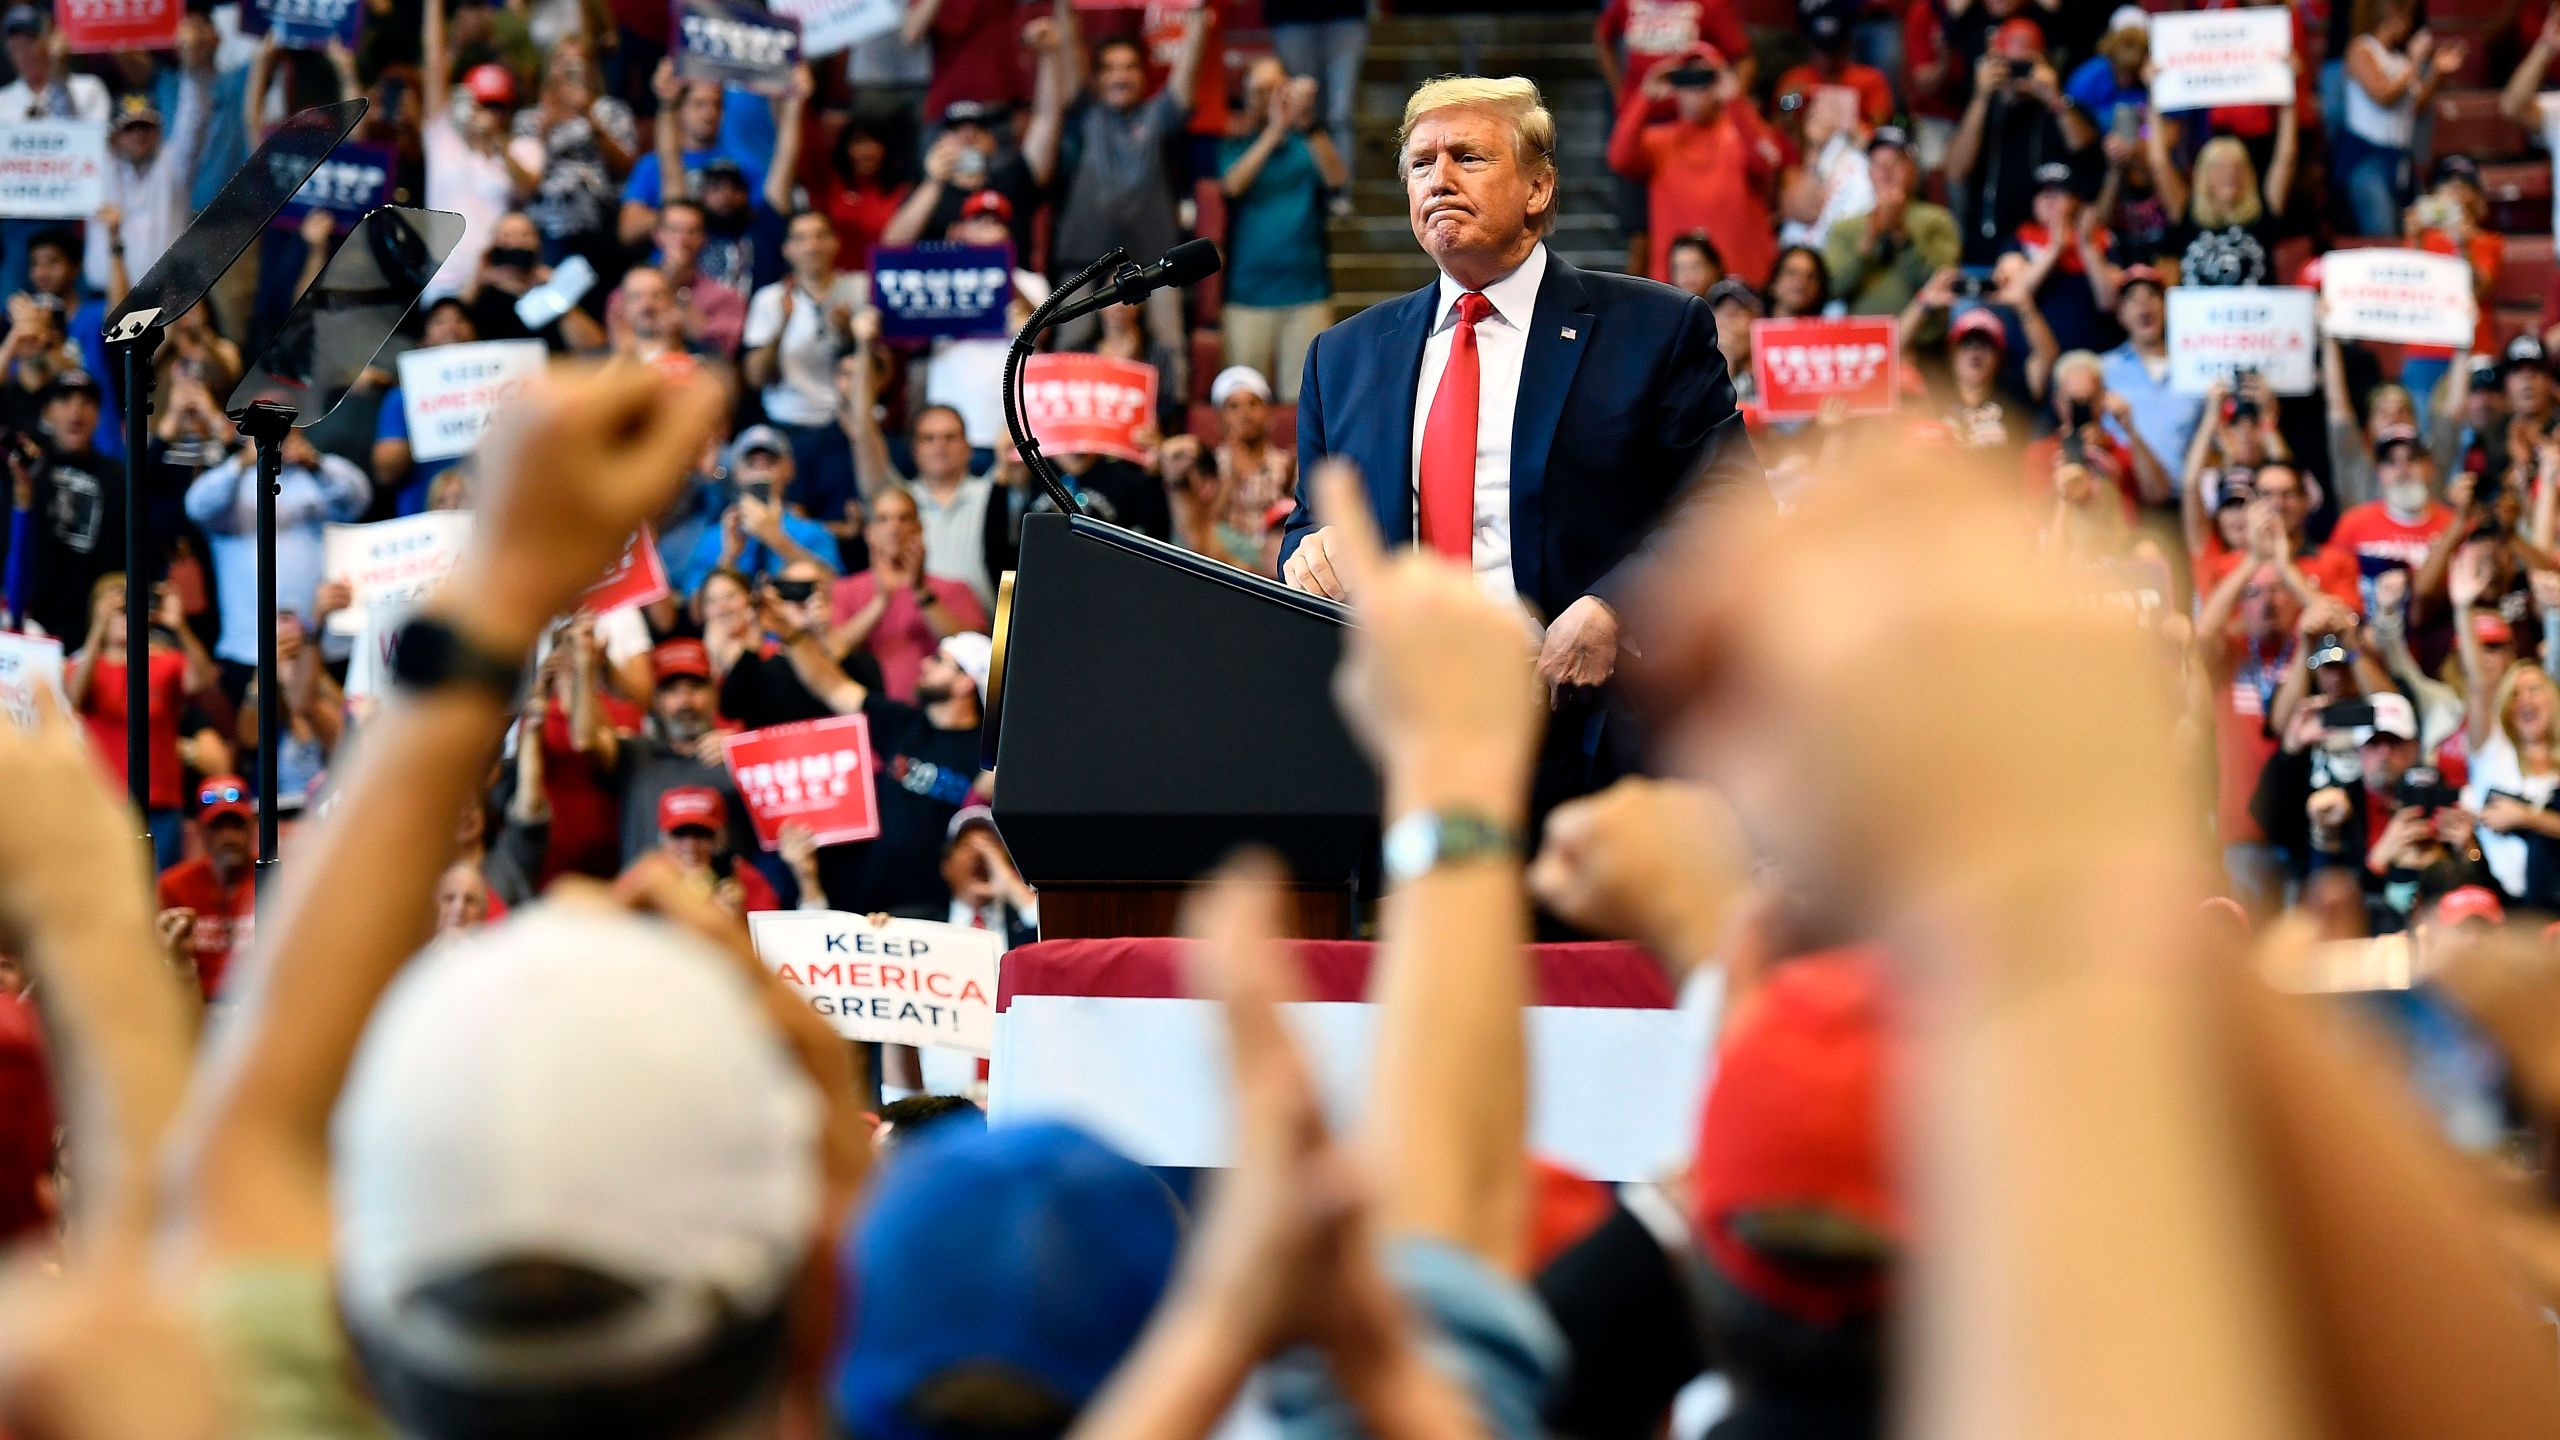 "Donald Trump gestures as he speaks during a ""Keep America Great"" campaign rally in Sunrise, Florida on Nov. 26, 2019. (Credit: Mandel Ngan/AFP via Getty Images)"